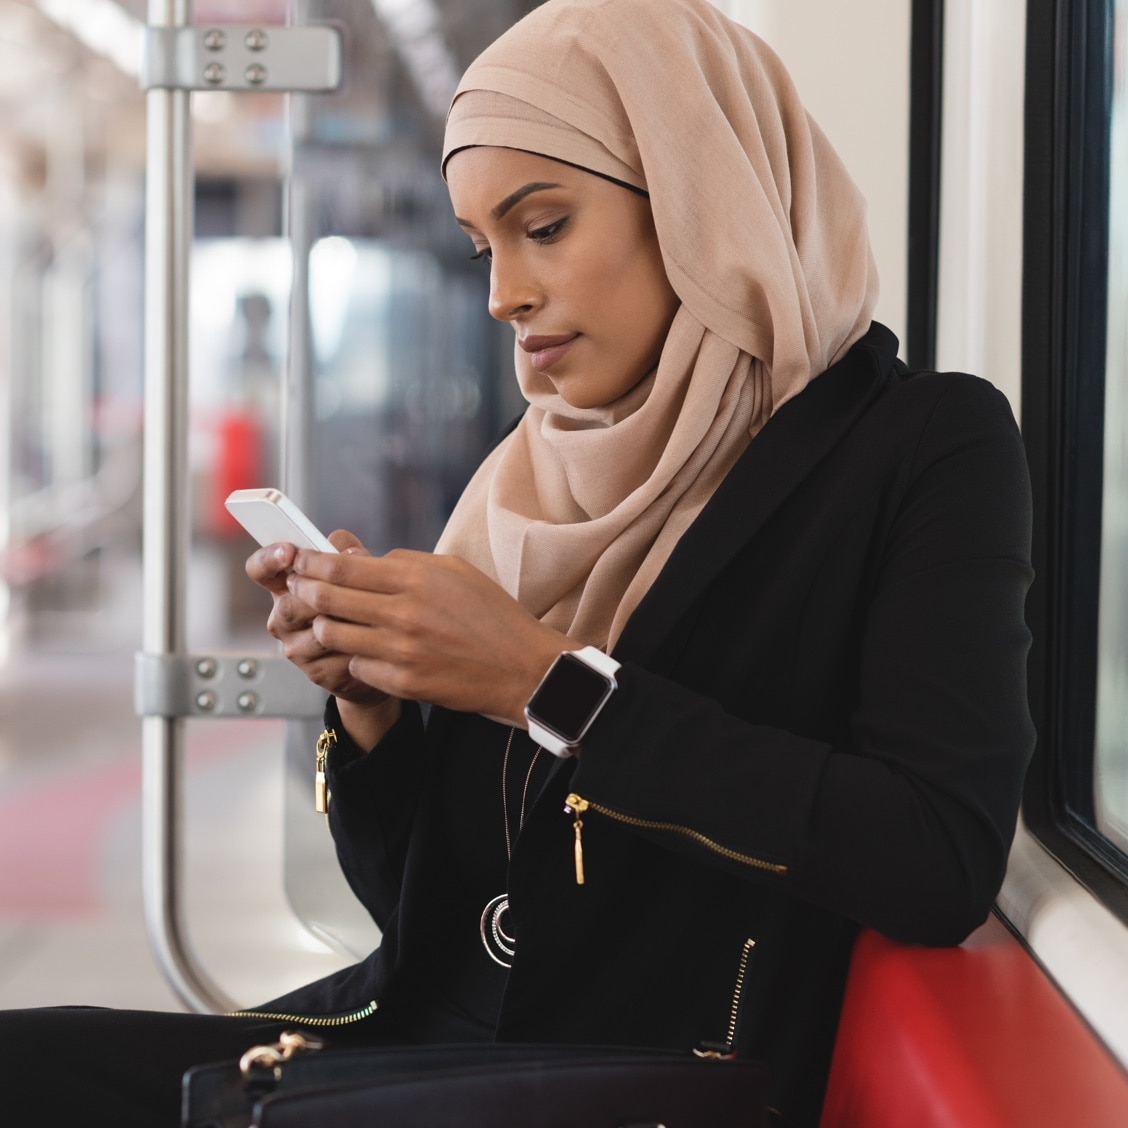 A woman using mobile data while on public transit.